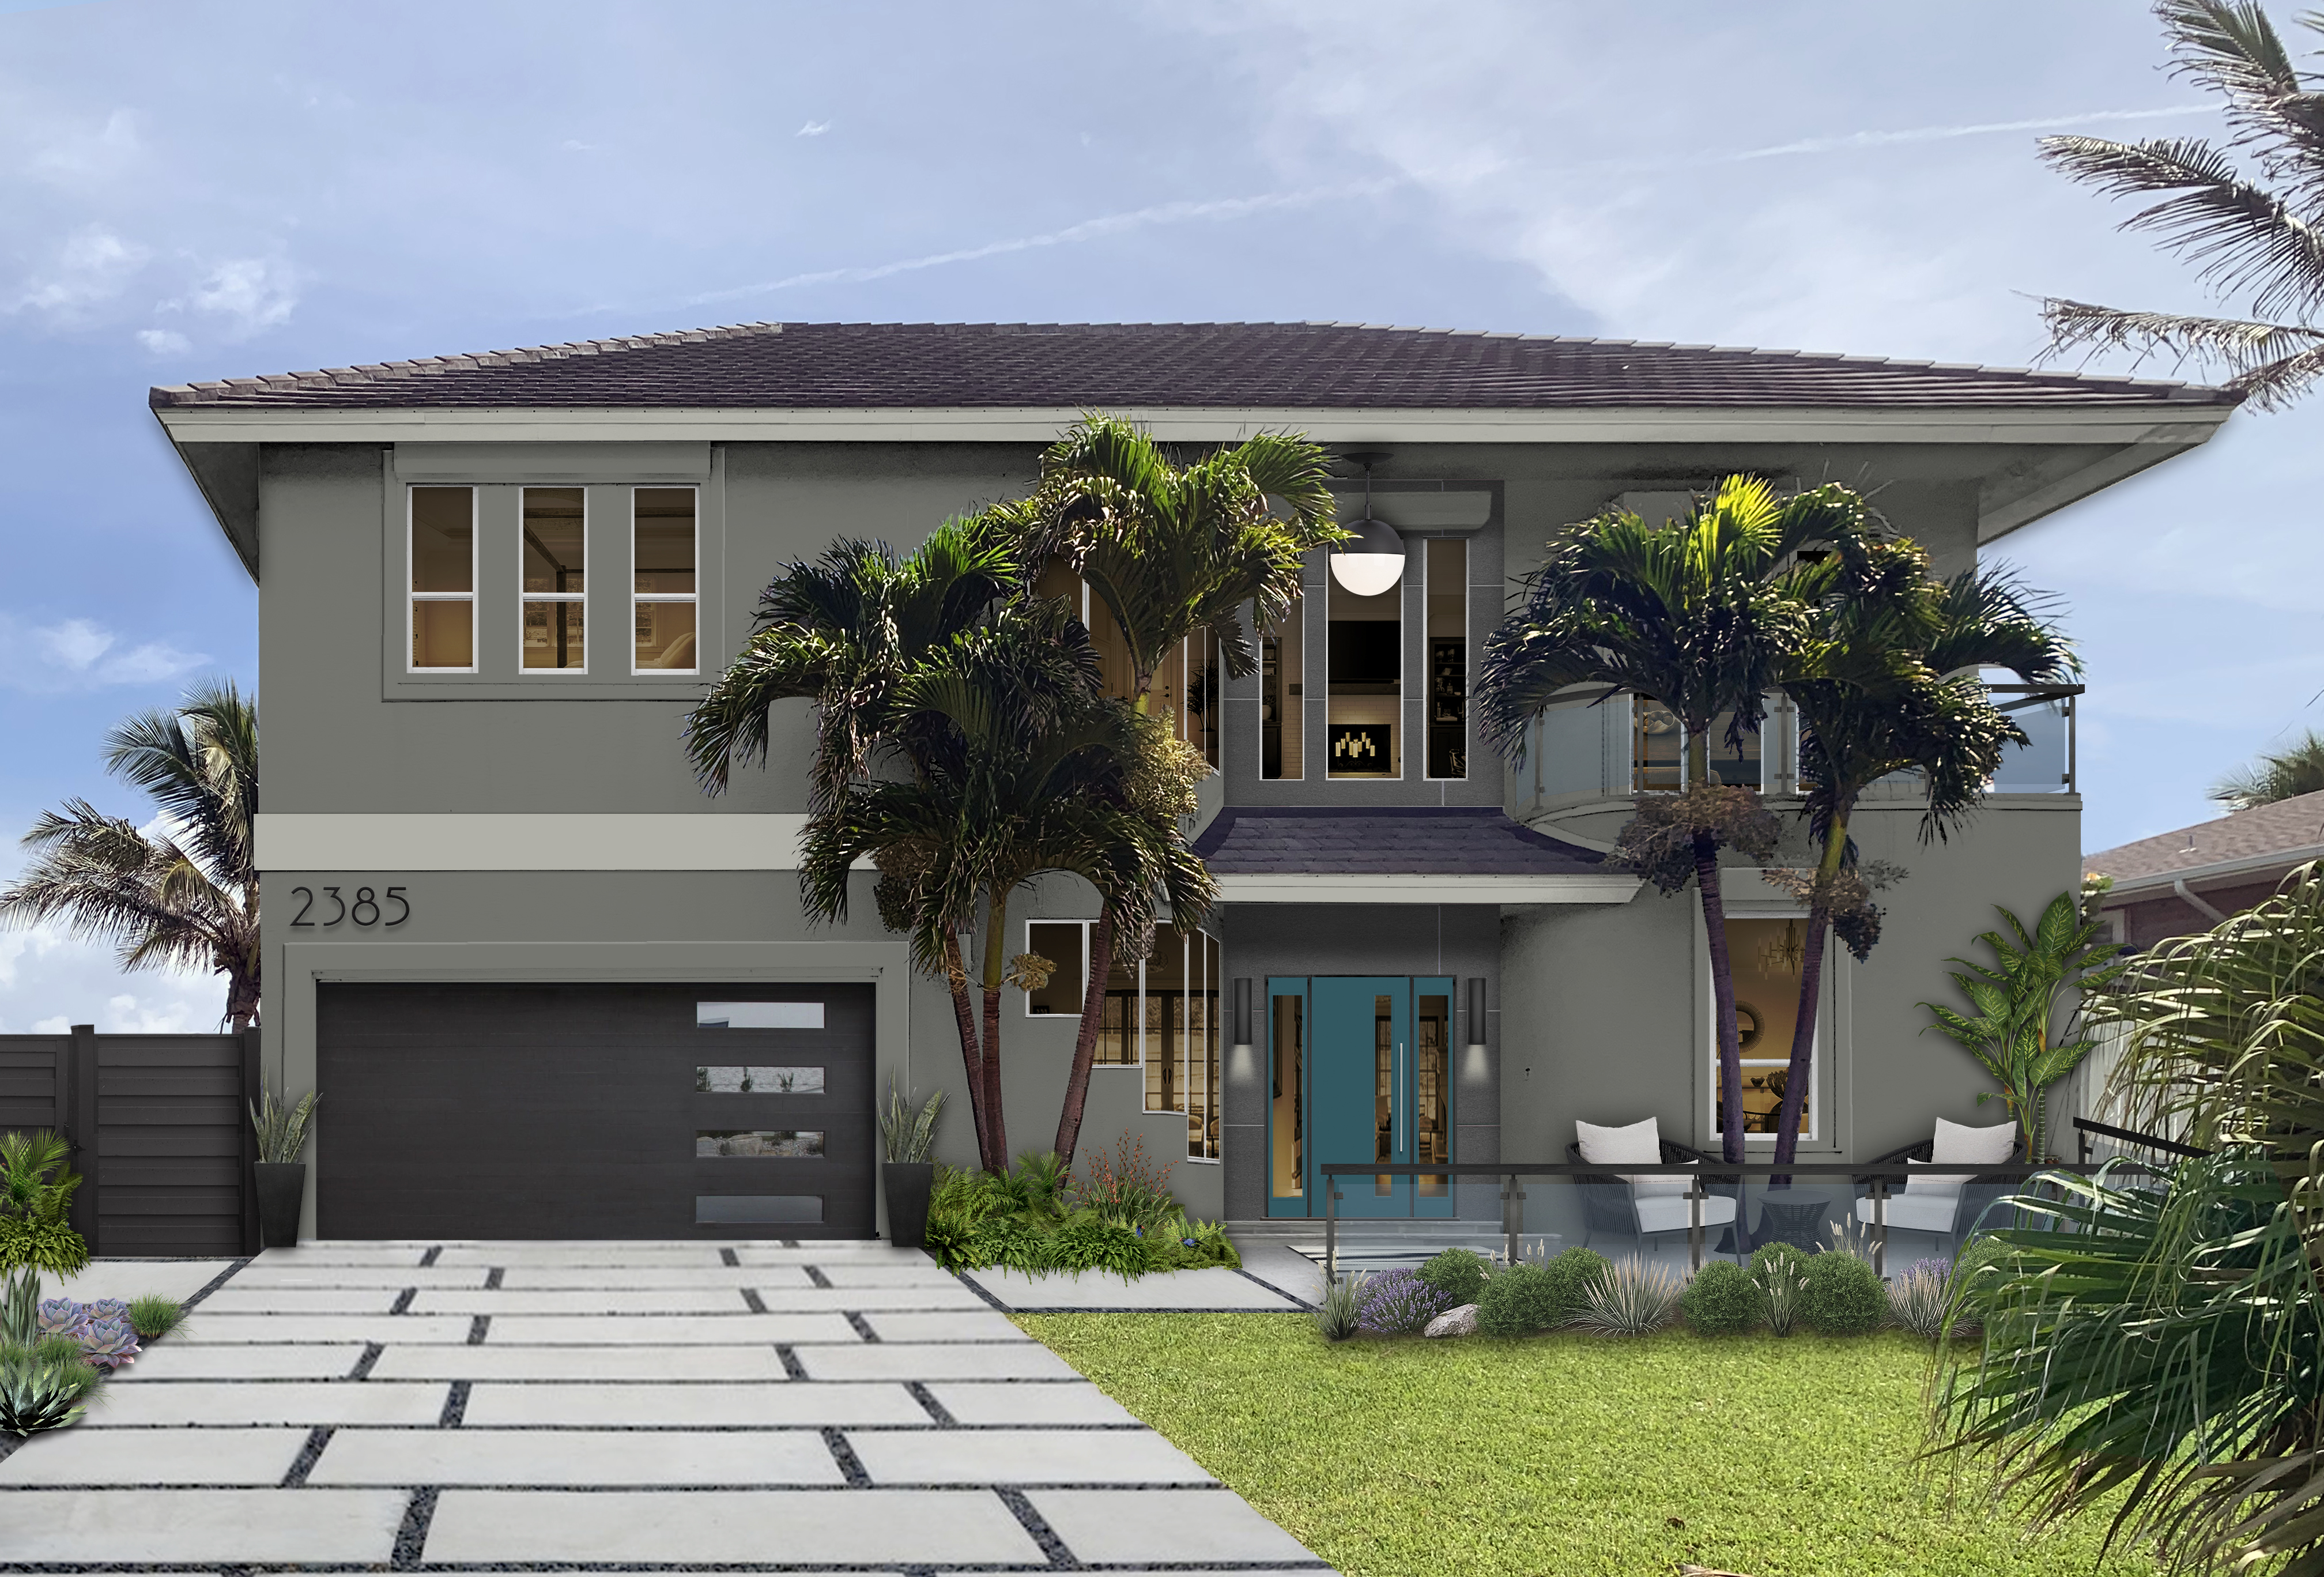 Virtual rendering of a two-story home painted in Amherst Gray